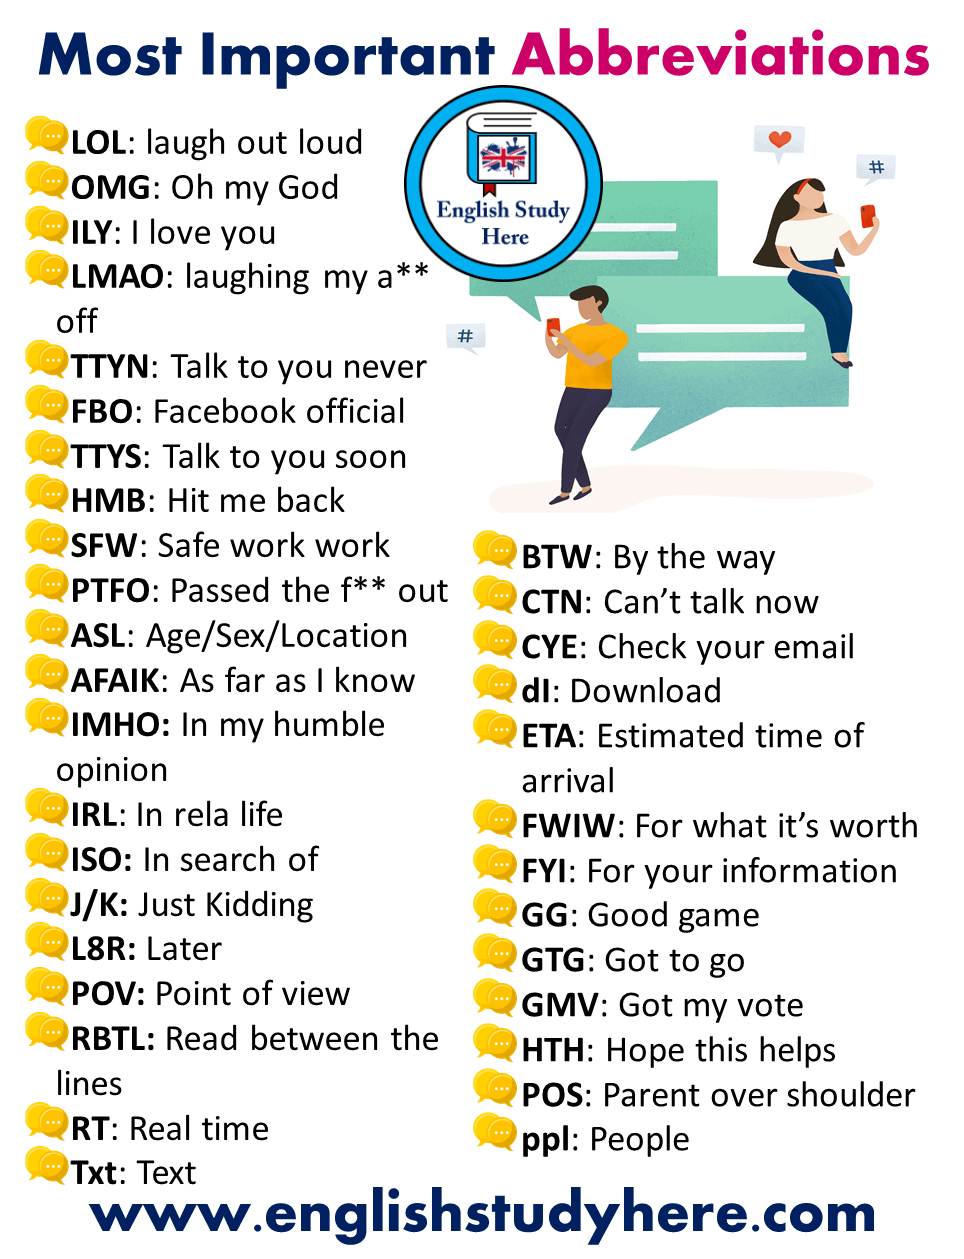 Most Important Abbreviations in English